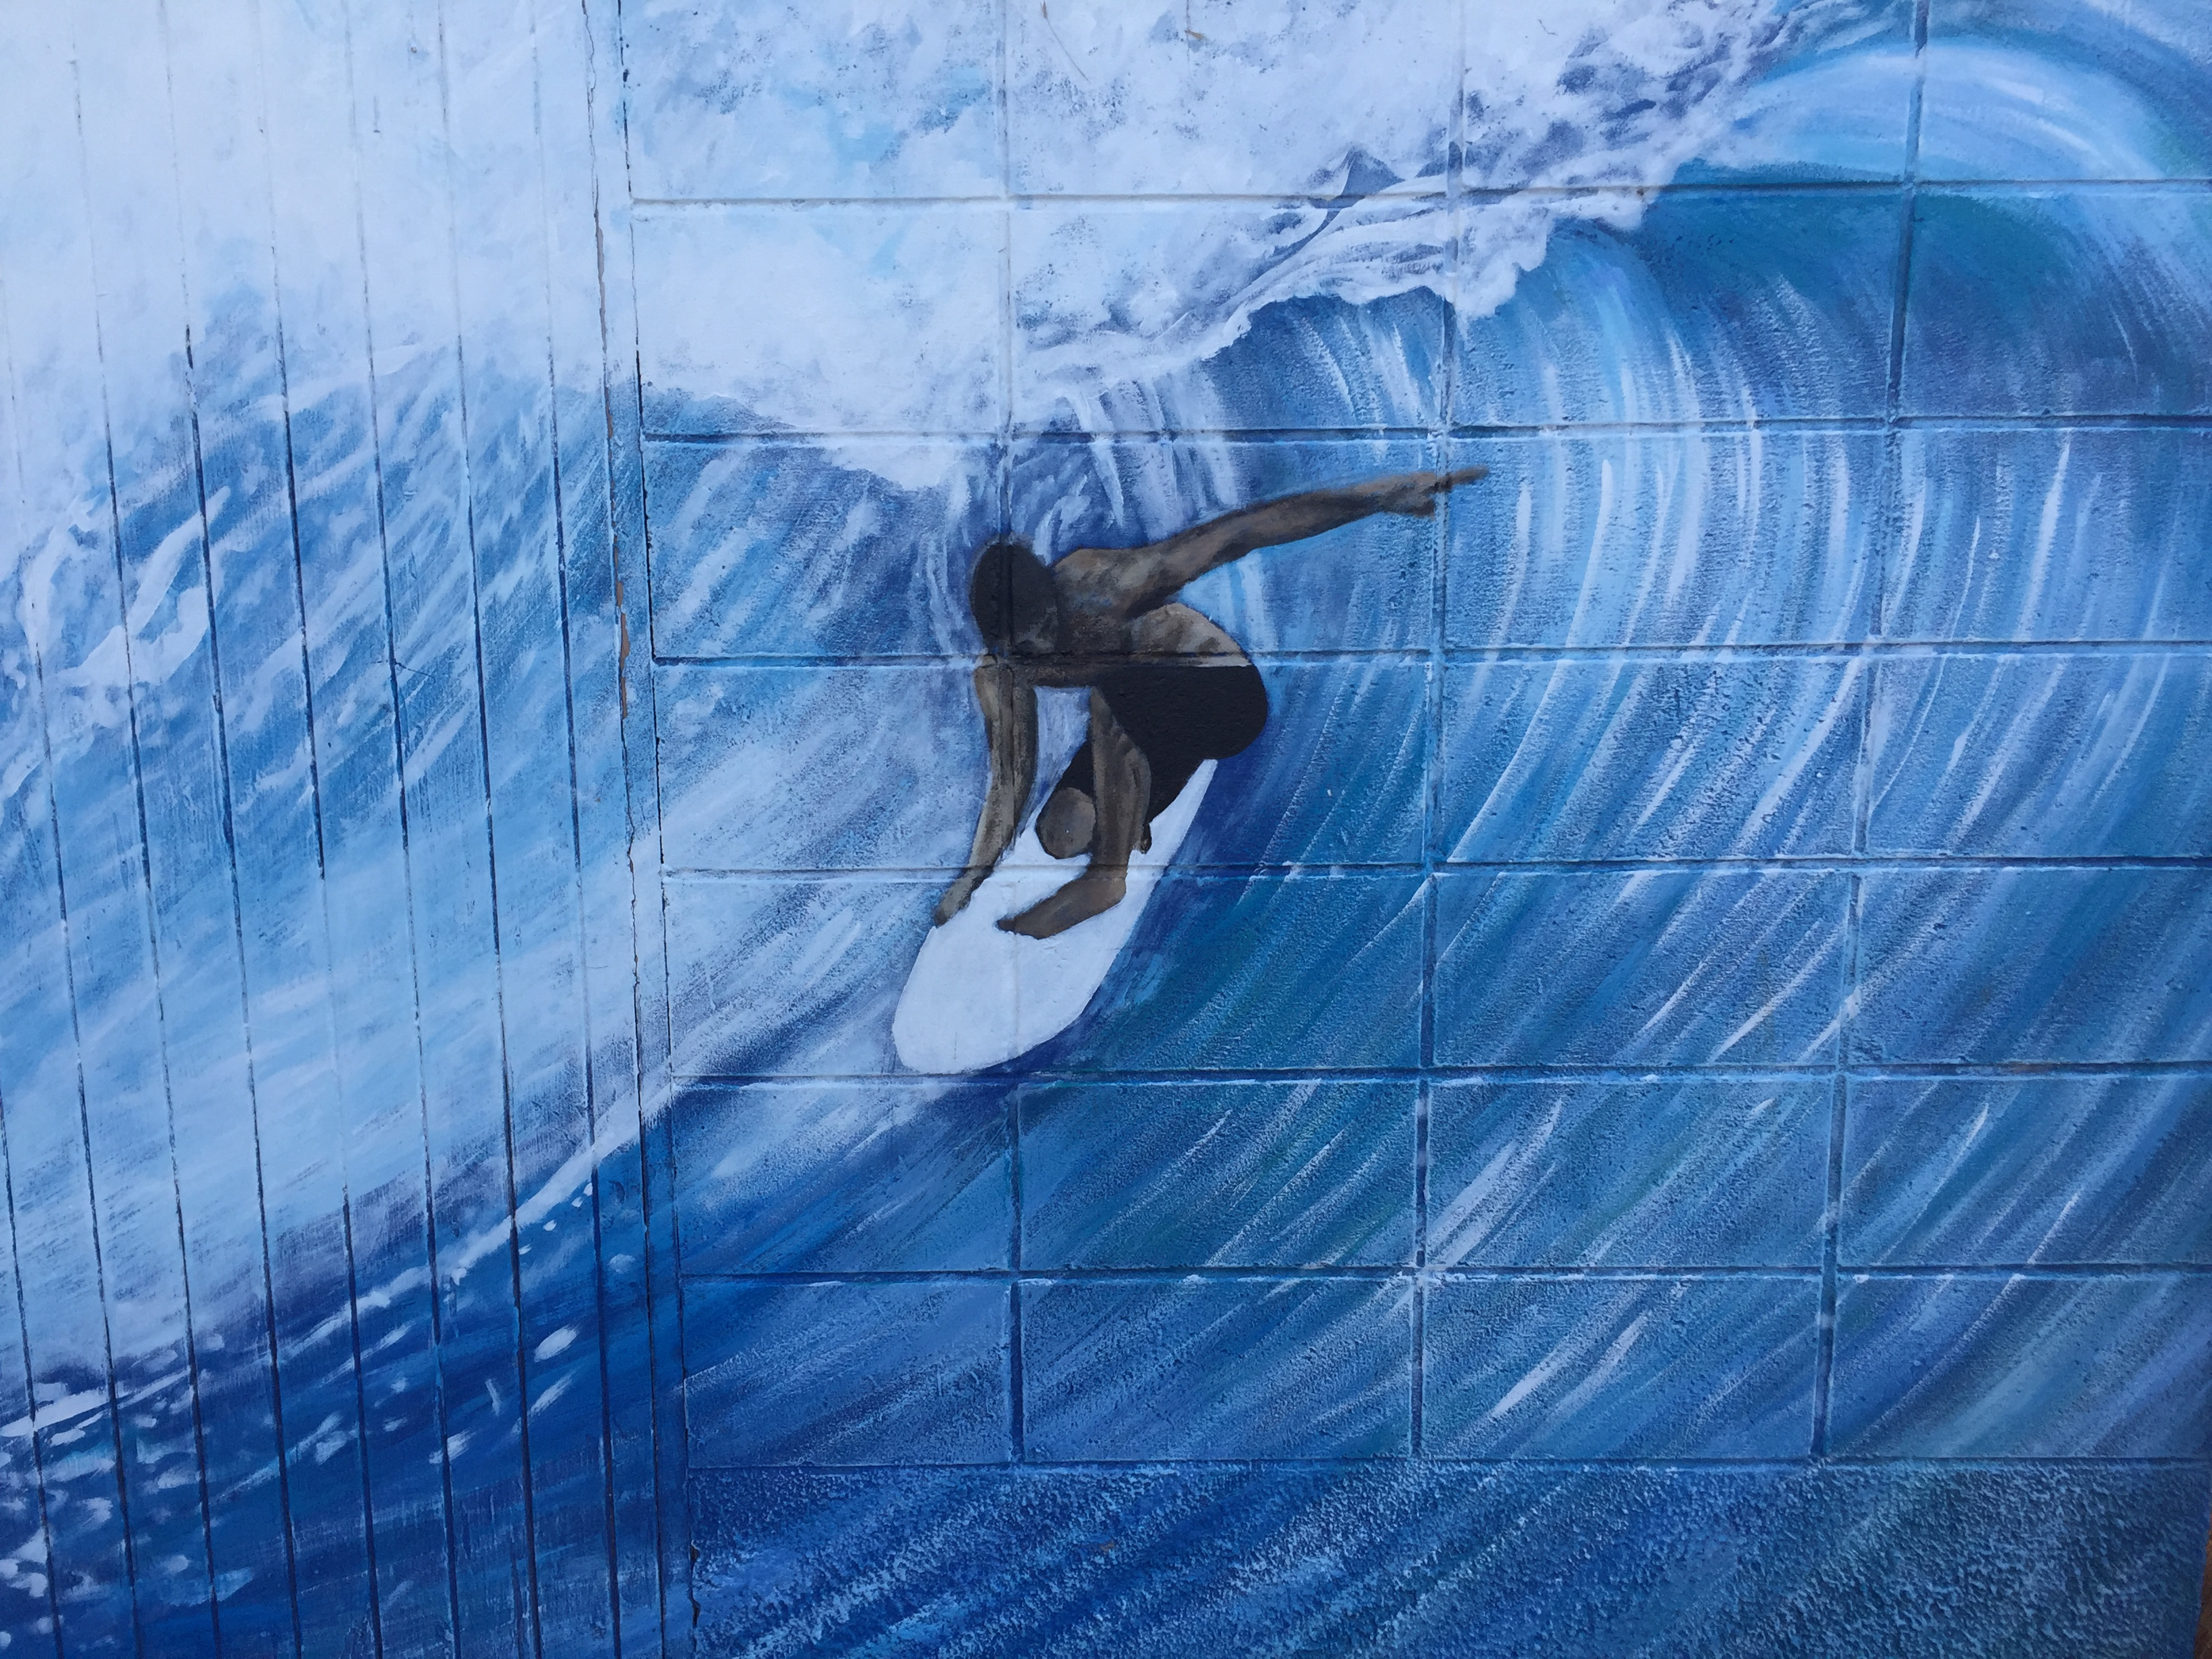 Mural at St. Kilda Surf Club